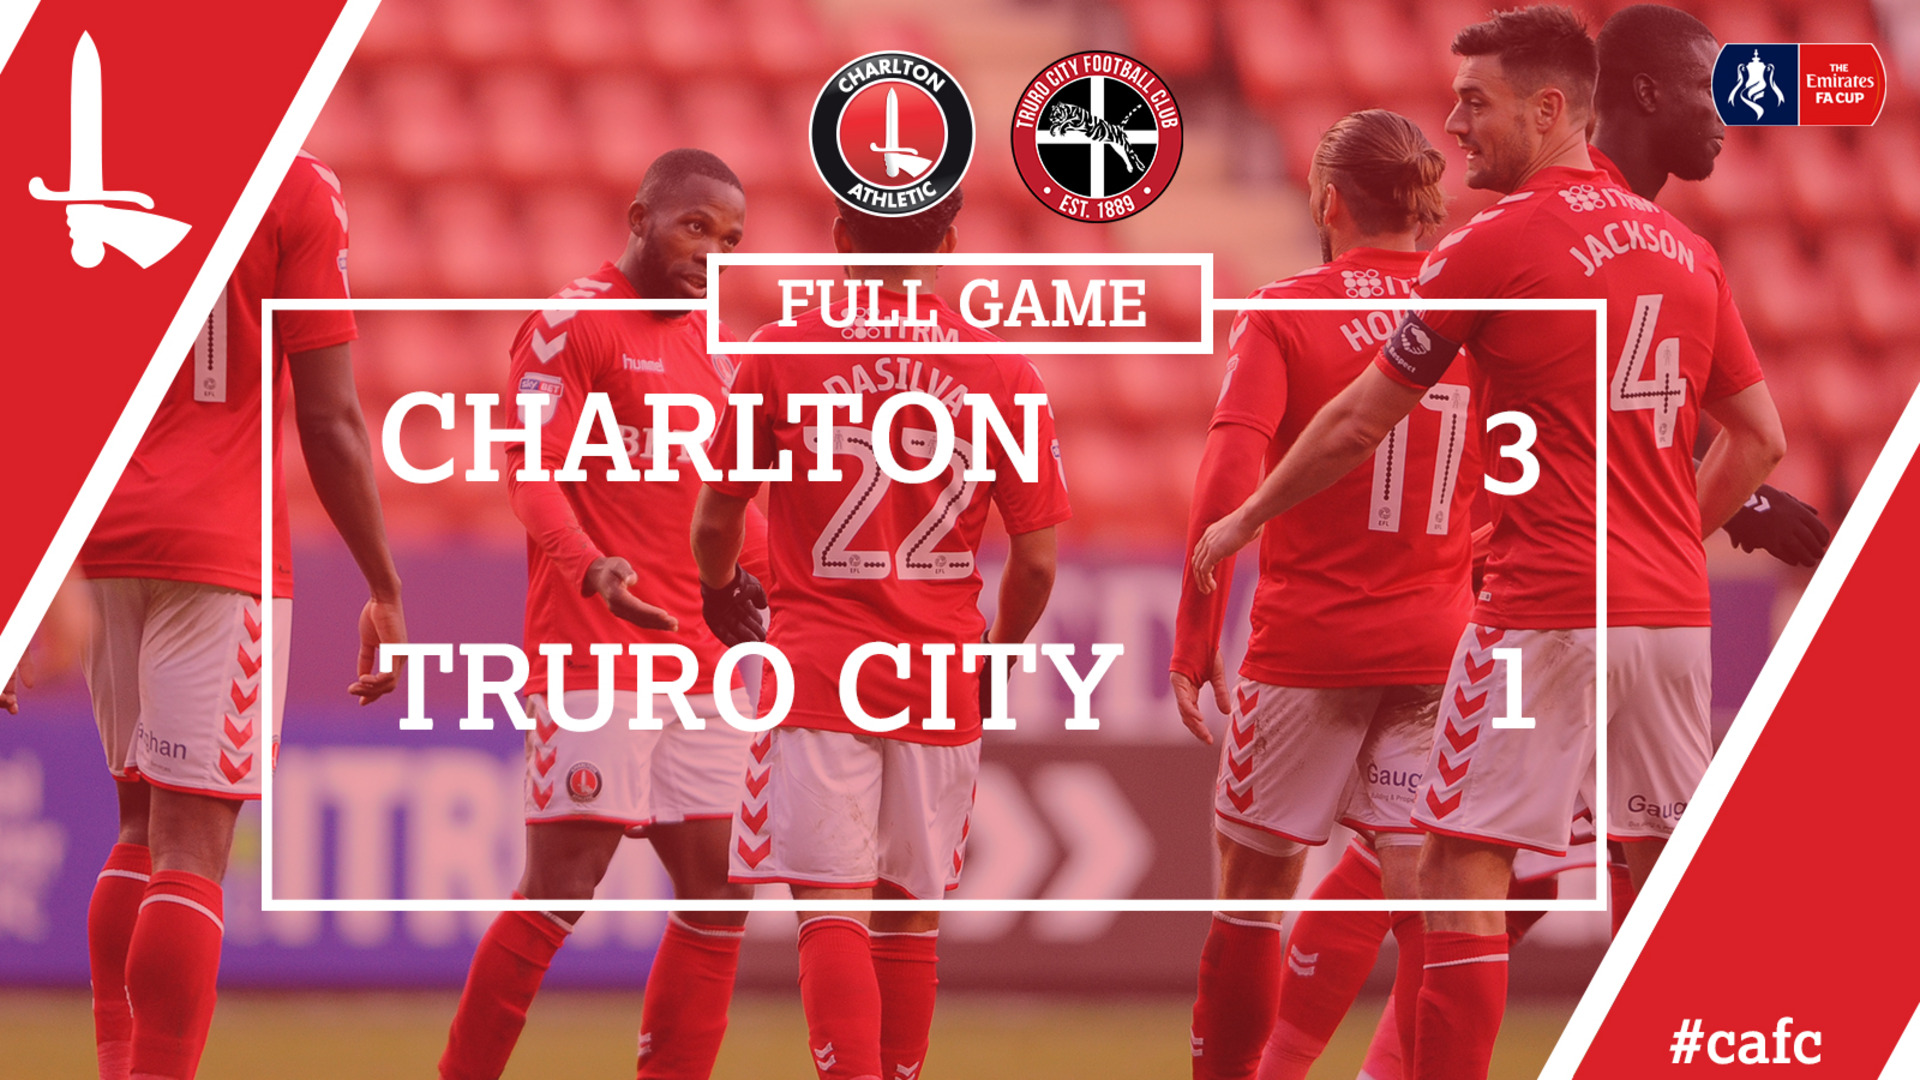 FULL GAME | Charlton 3 Truro City 1